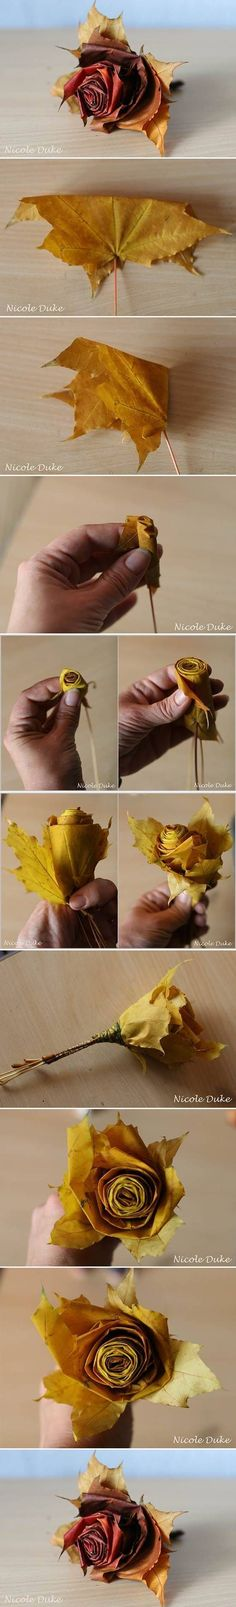 Make Fall Decoration yourself - 15 DIY Craft Ideas - Leaf Rose - Diy Fall Decor - Fall Crafts For Kids Leaf Crafts, Diy And Crafts, Arts And Crafts, Paper Crafts, Handmade Crafts, Autumn Leaves Craft, Autumn Crafts, Diy Autumn, Diy Y Manualidades